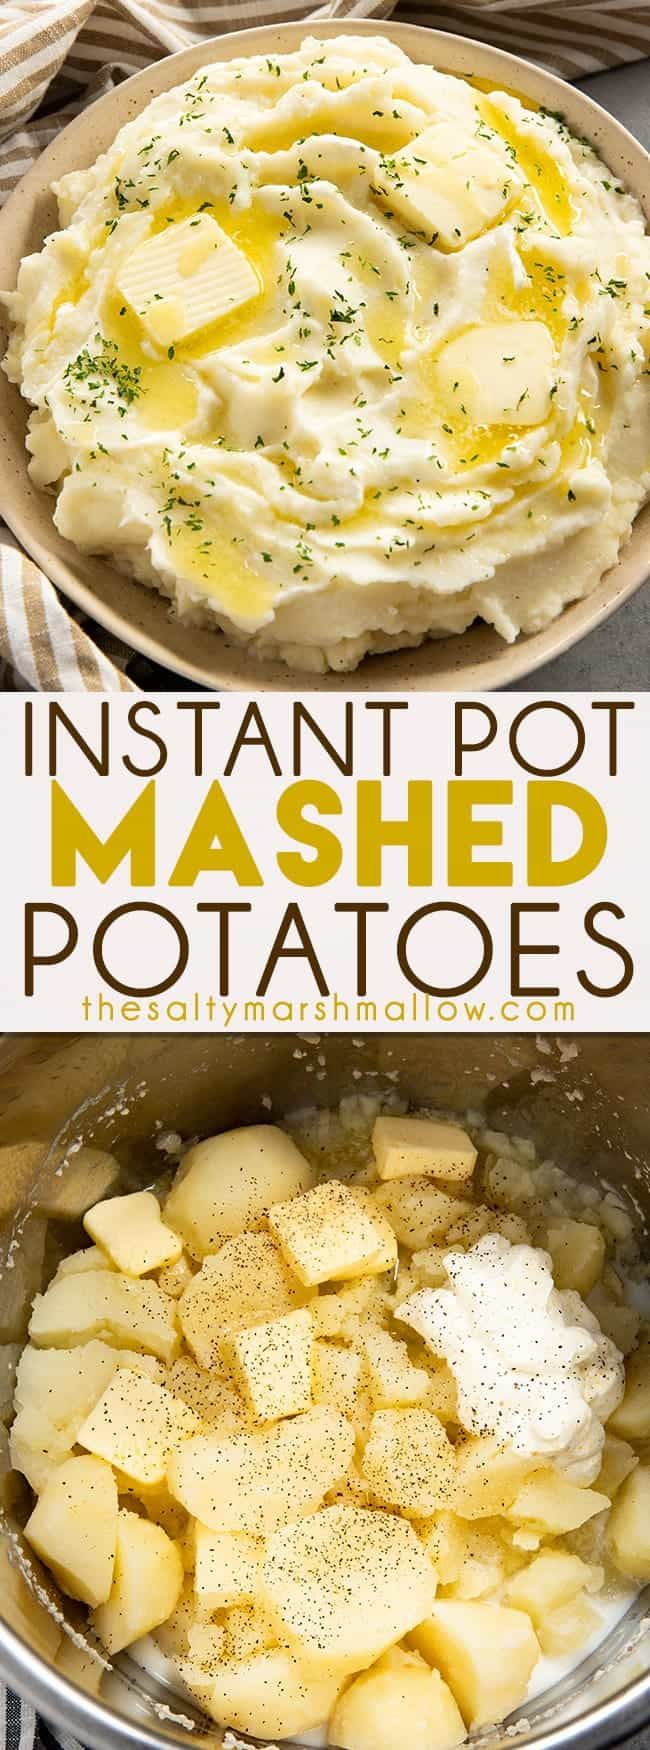 Instant Pot Mashed Potatoes - The Salty Marshmallow